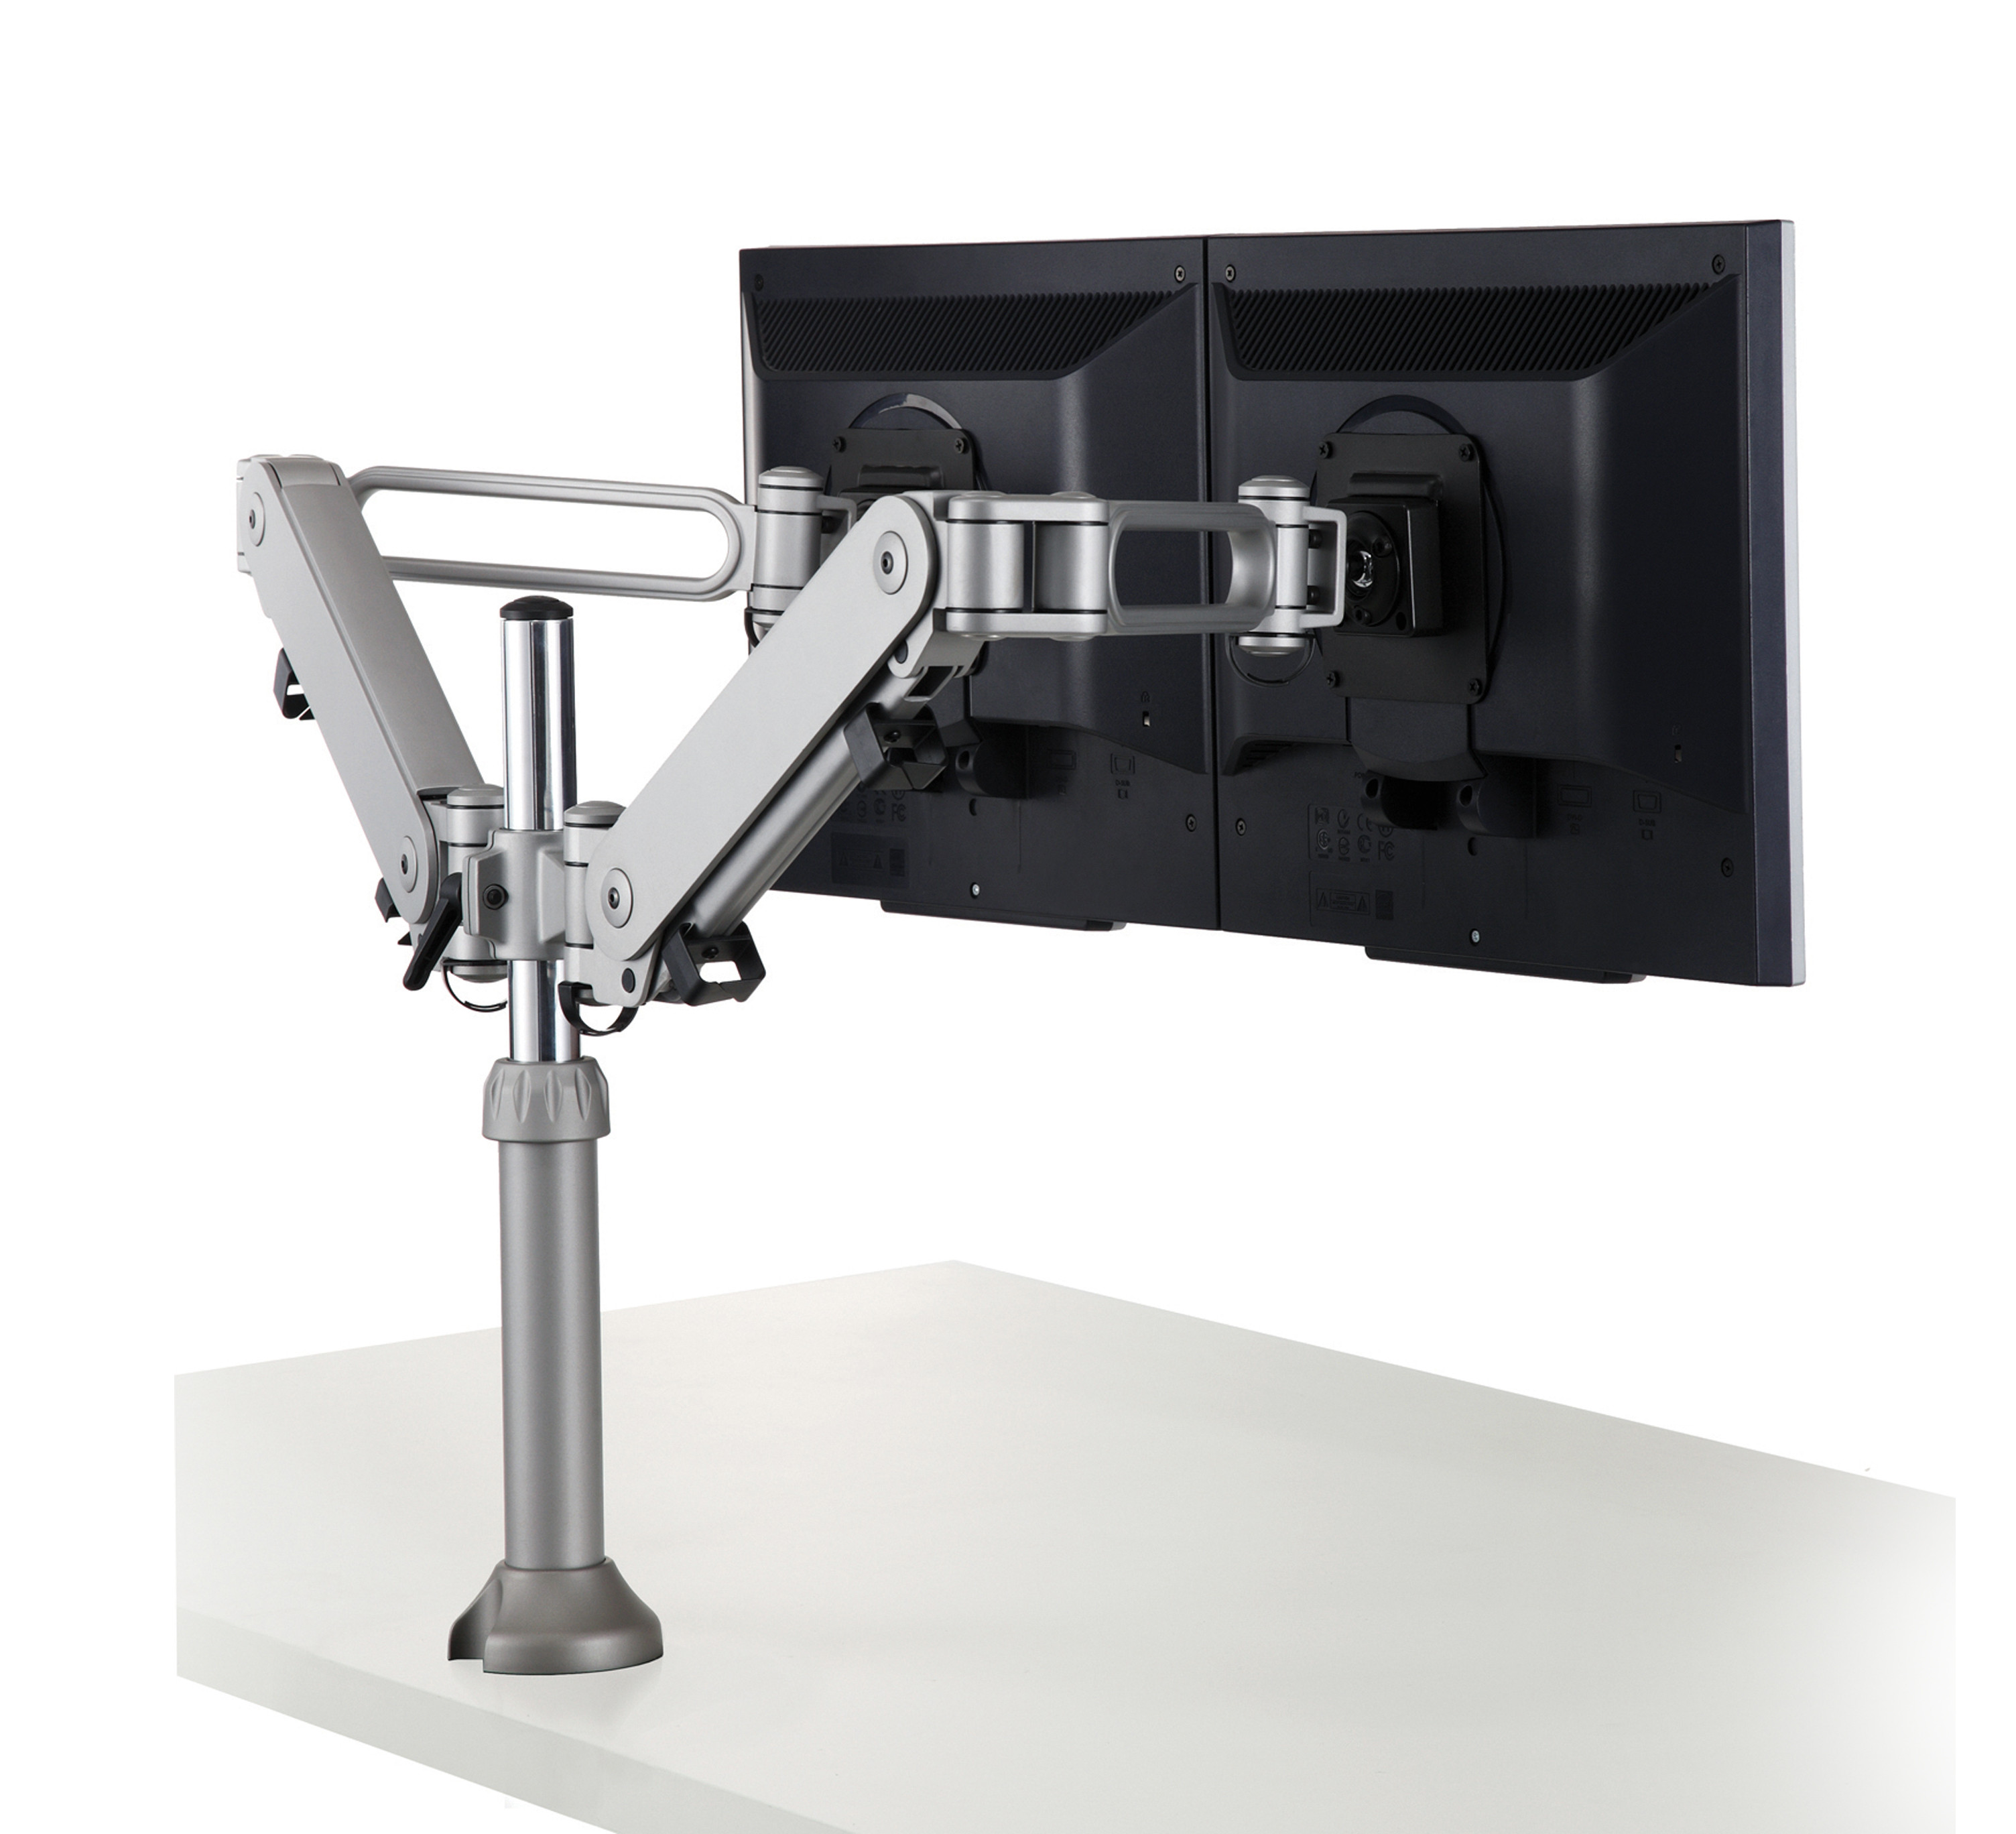 M4 Monitor Arm by Humanscale